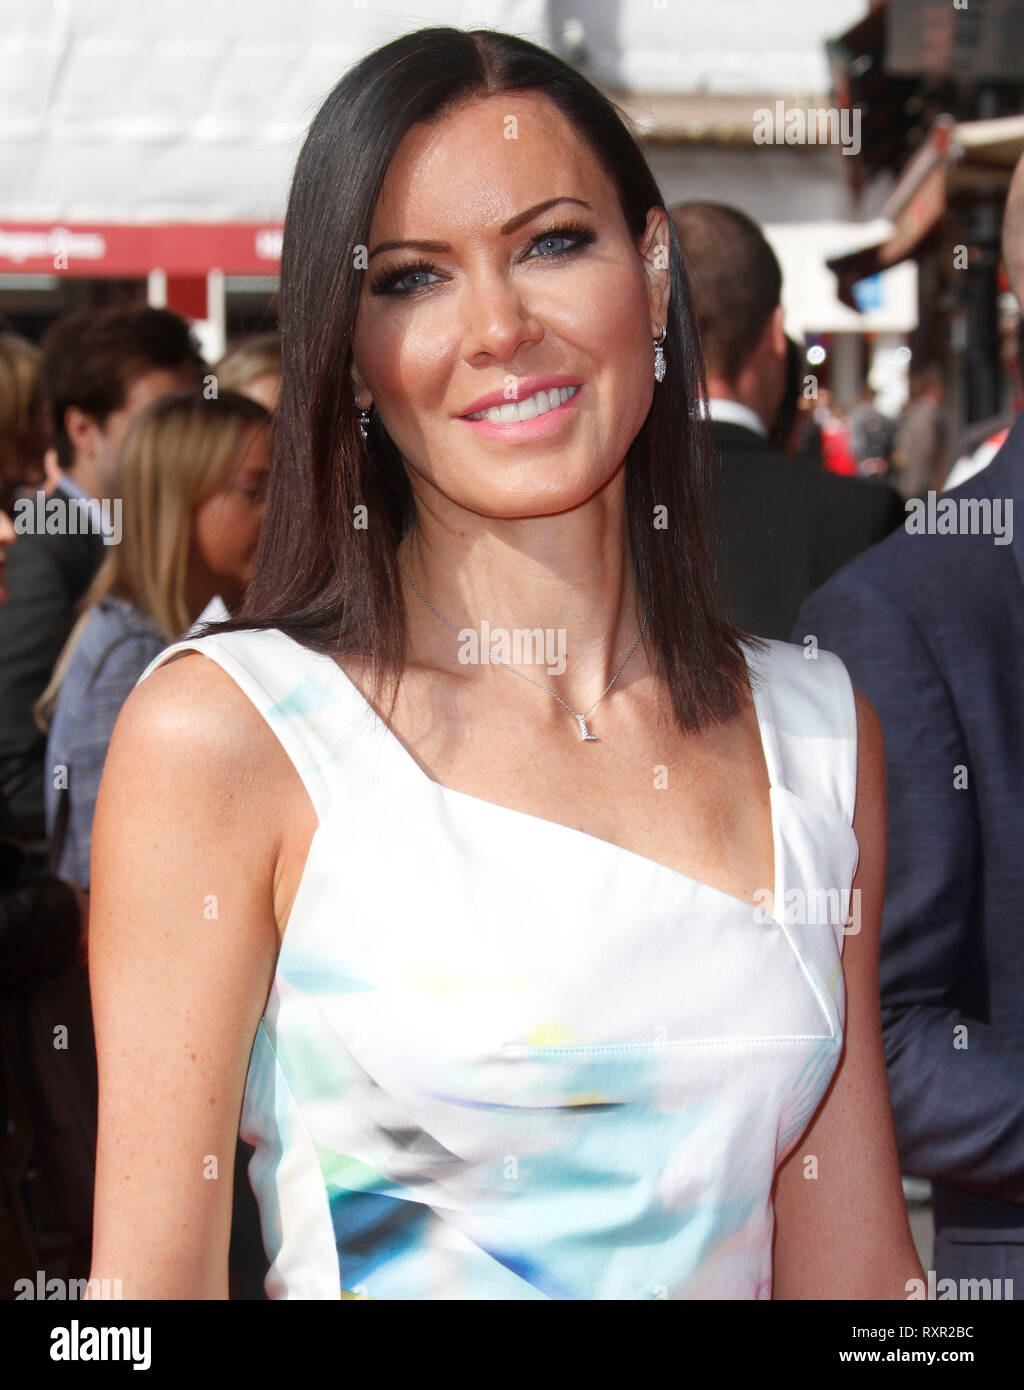 Mar 12, 2015 - London, England, UK - The Prince's Trust & Samsung Celebrate Success Awards, Odeon, Leicester Square Photo Shows: Linzi Stoppard - Stock Image